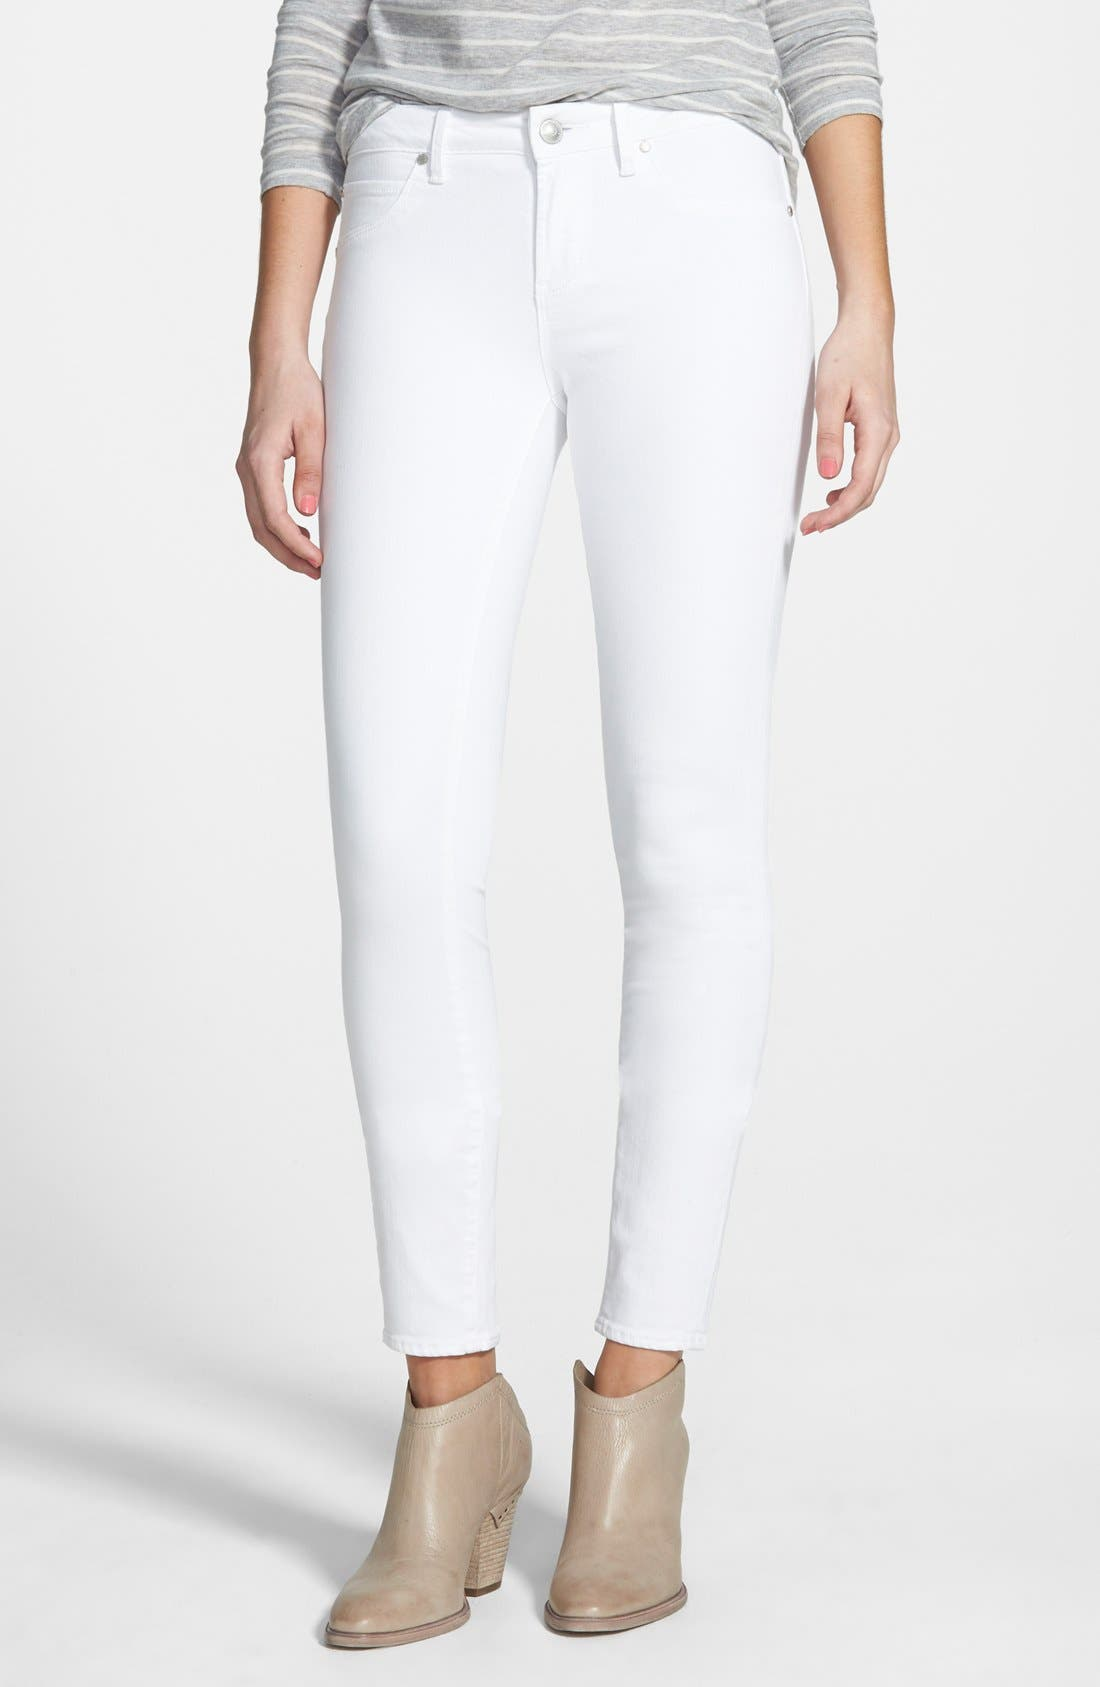 ARTICLES OF SOCIETY 'Sarah' Skinny Jeans, Main, color, 100